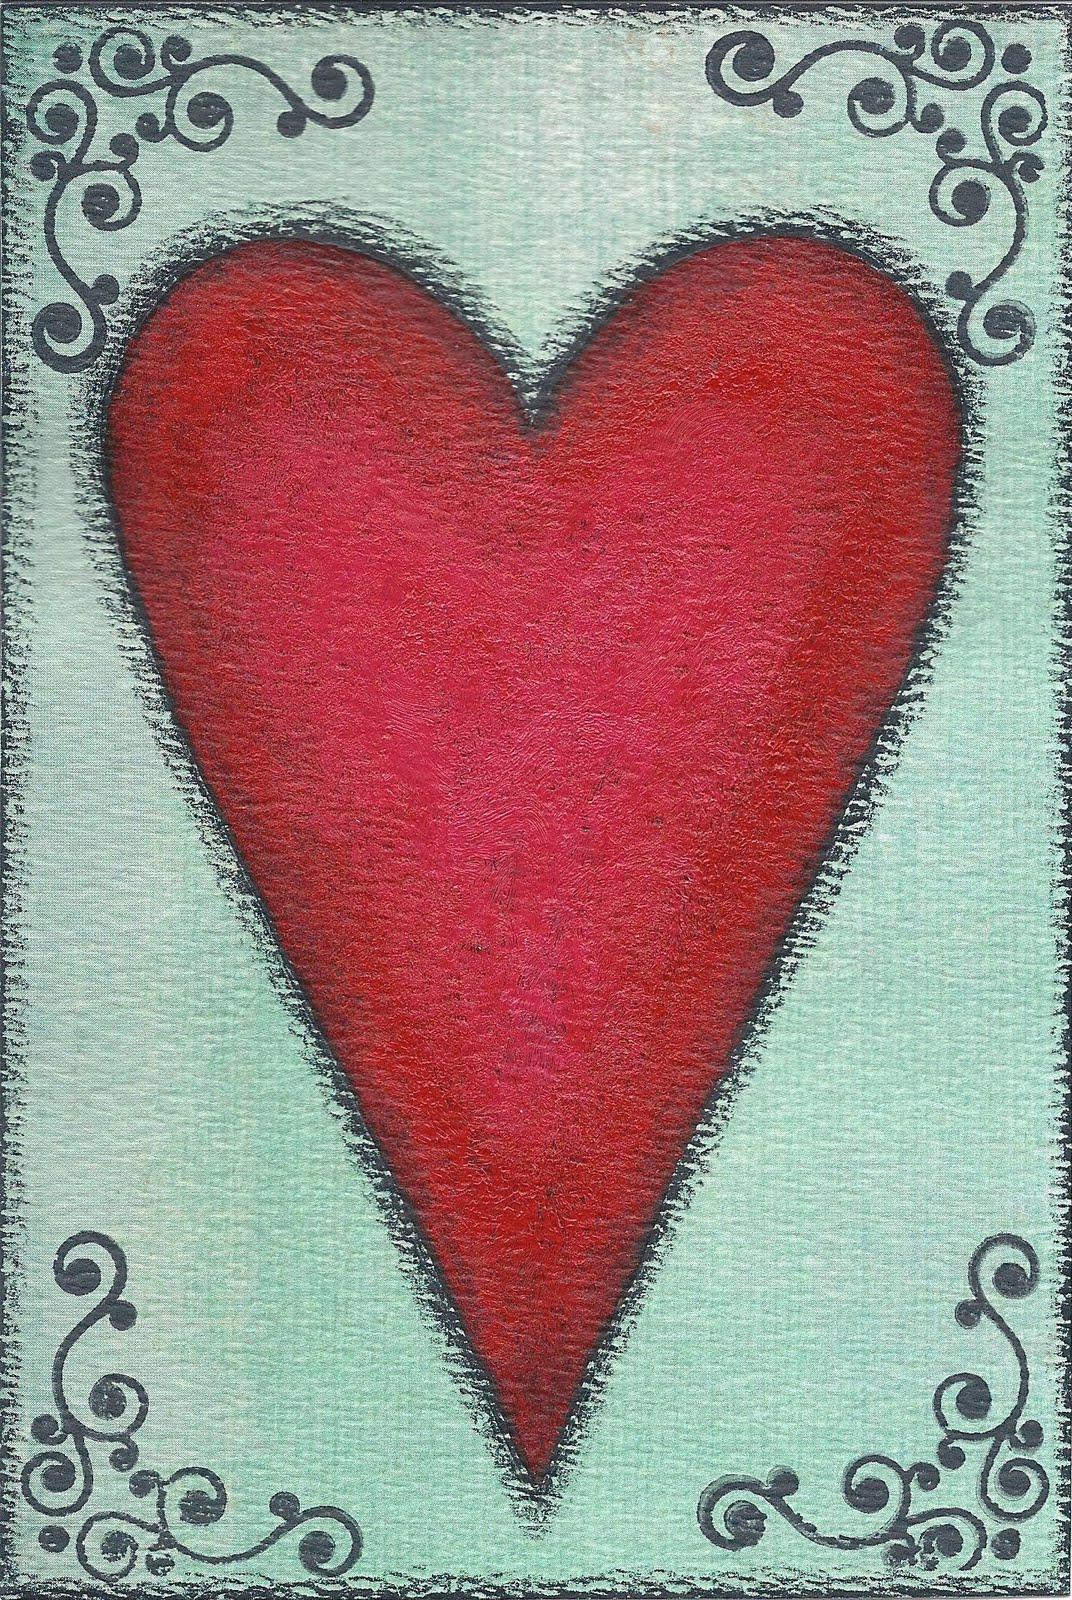 Free Country Heart Cliparts Download Free Clip Art Free